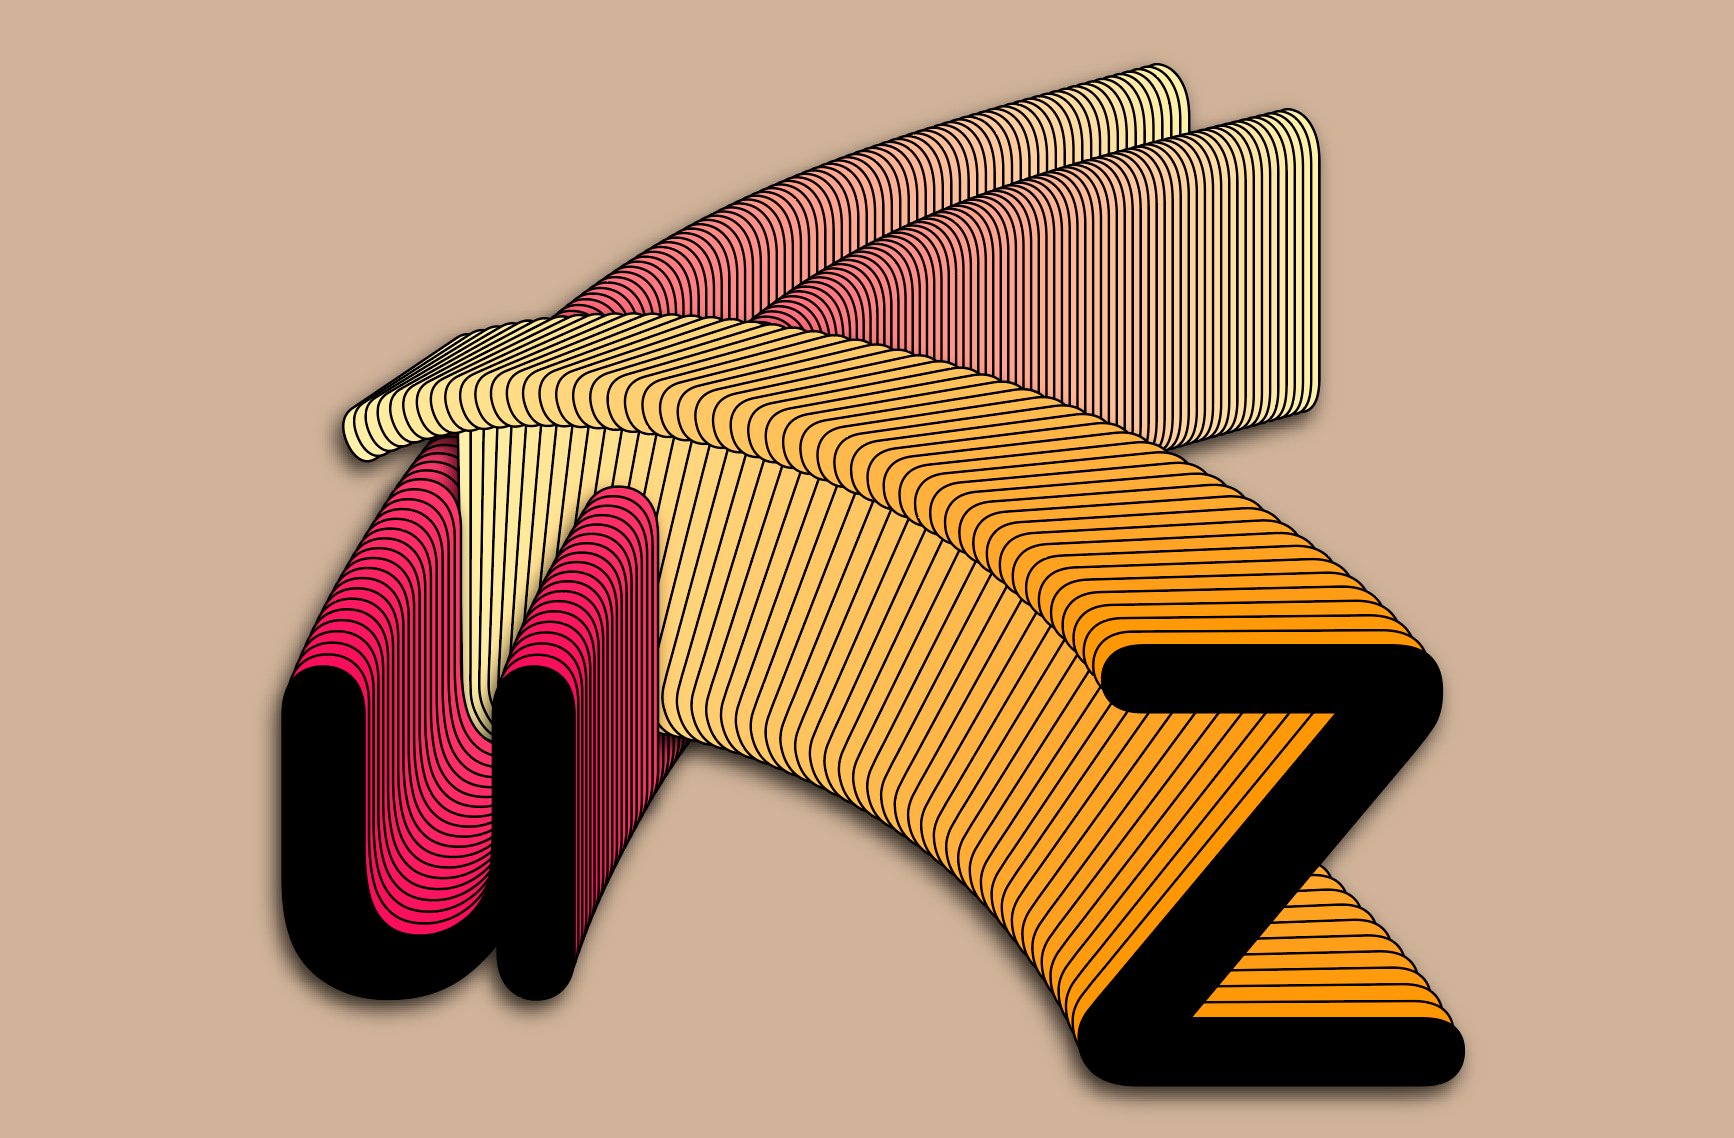 The Z slices through the path of the U